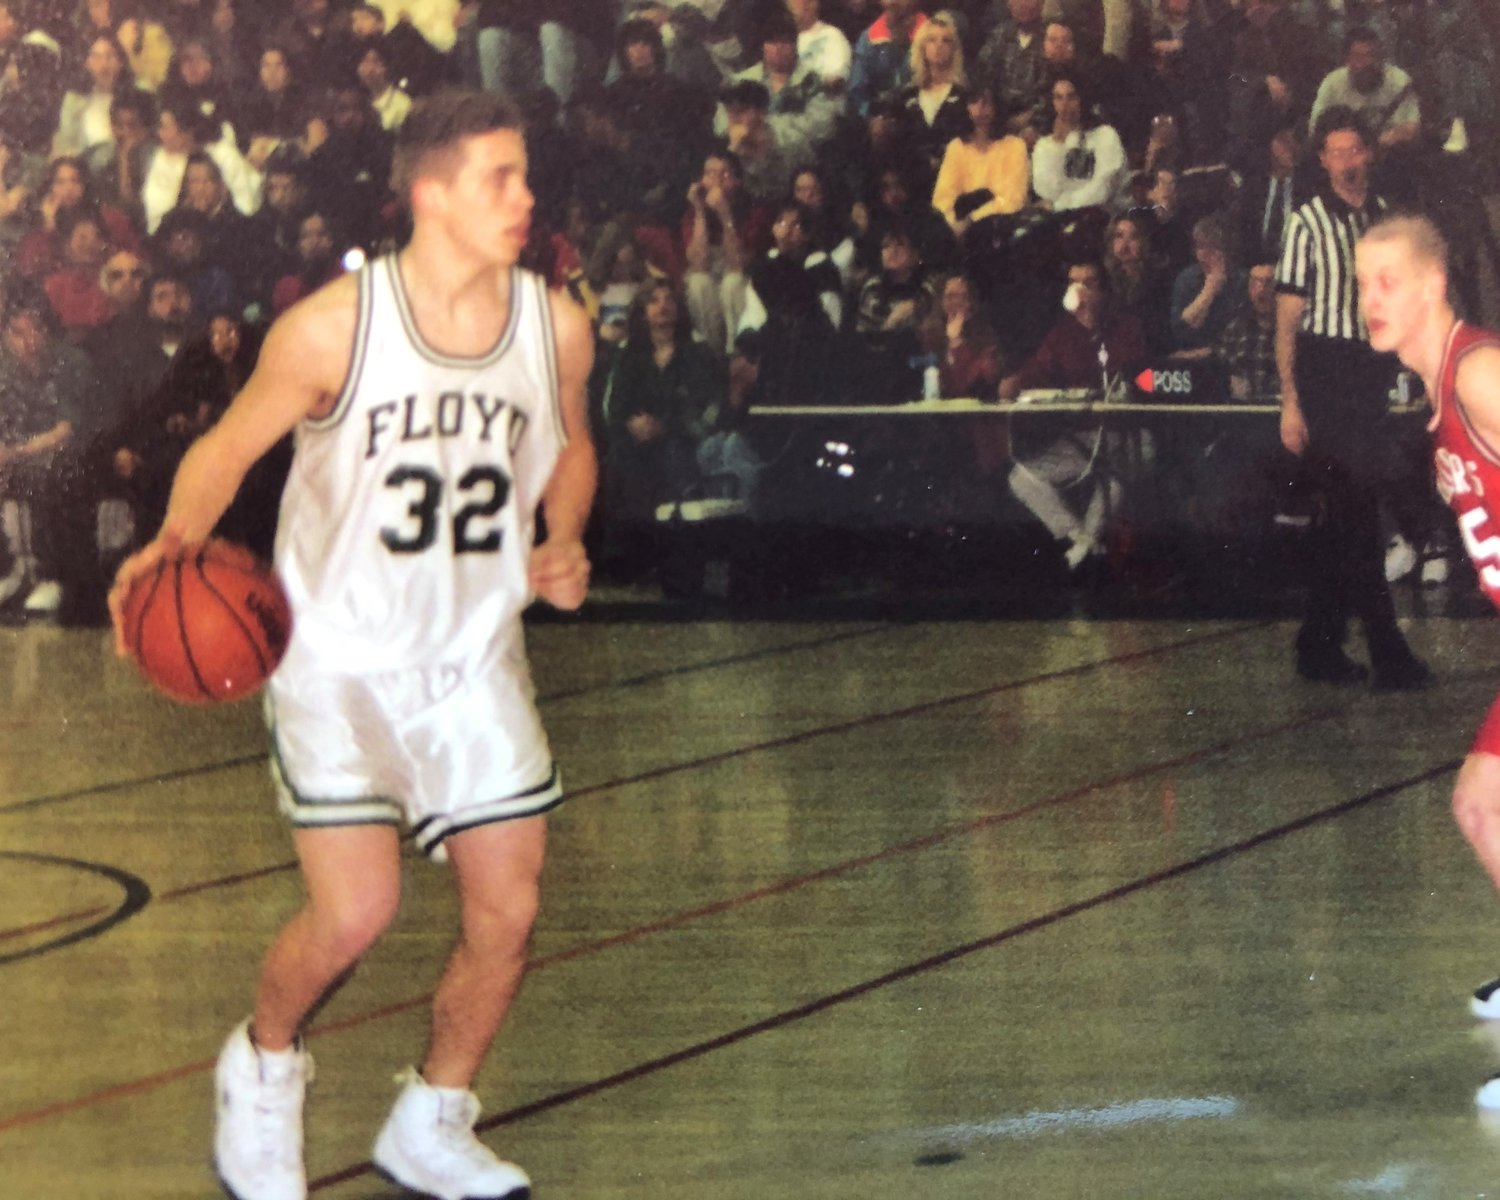 Brian Babst was a three-sport all-county athlete while attending high school in the district. He was the captain of all three sports, including the basketball team.